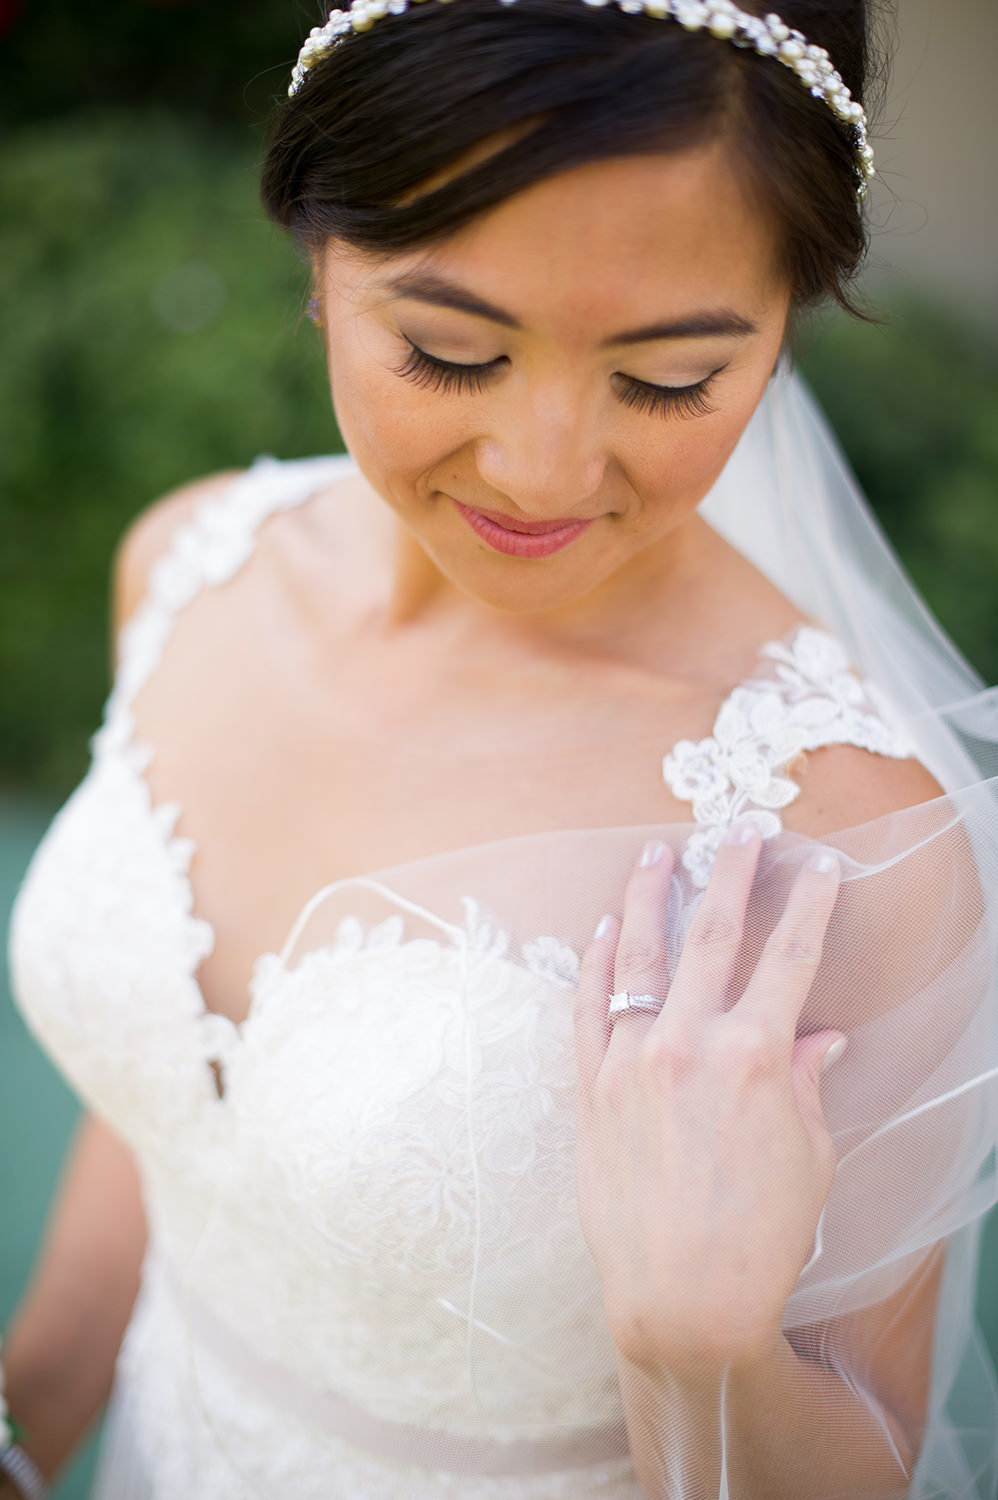 beautiful bride image